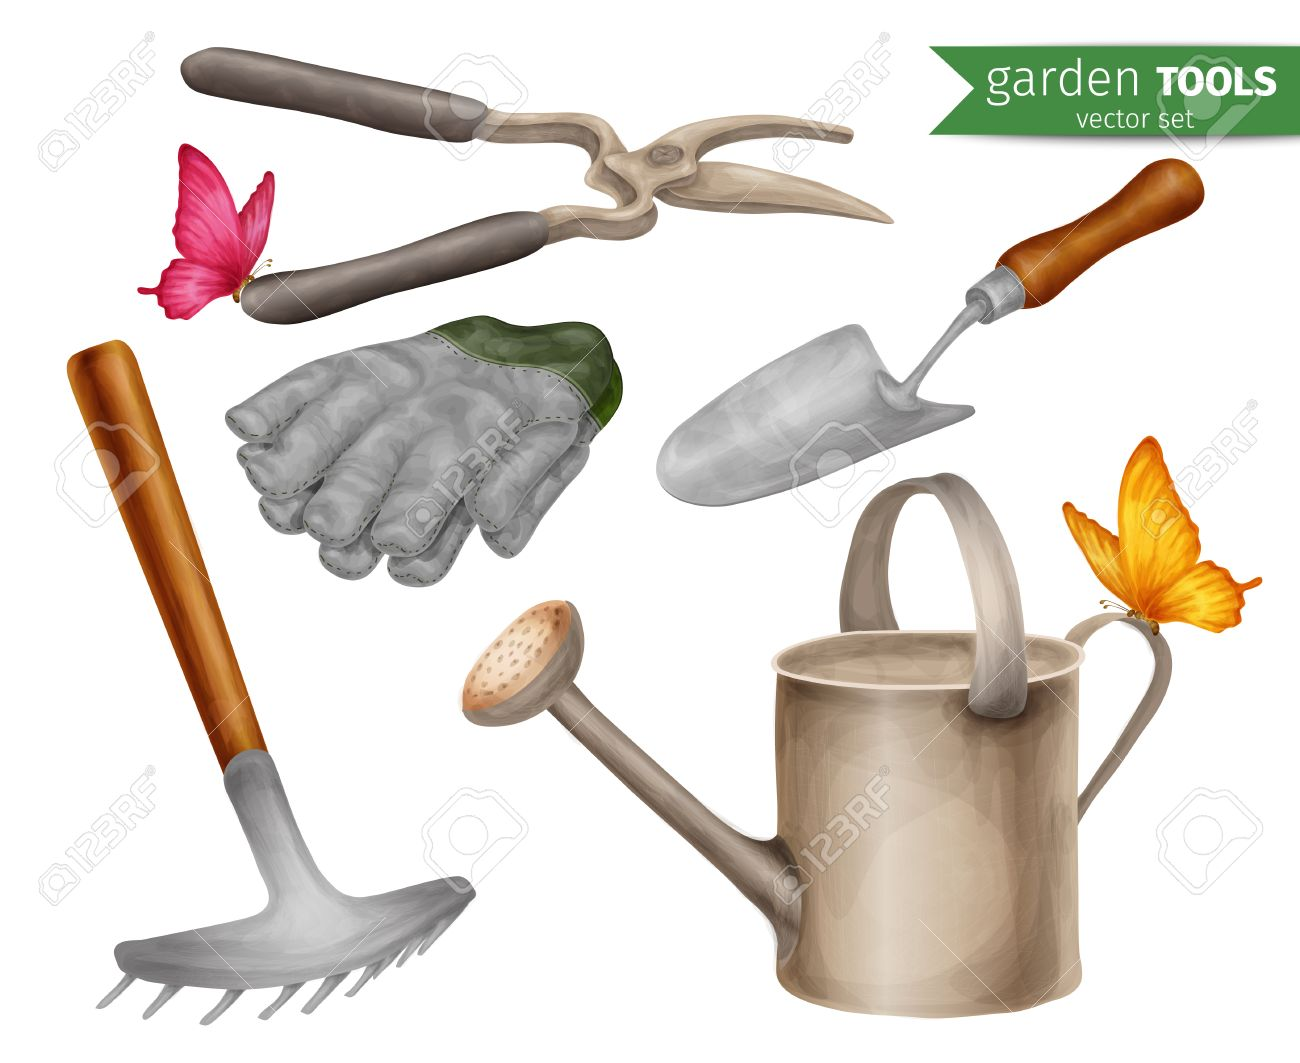 Wonderful Garden Tools Farming Agriculture Equipment Decorative Icons Set Isolated  Illustration. Stock Vector   32939852